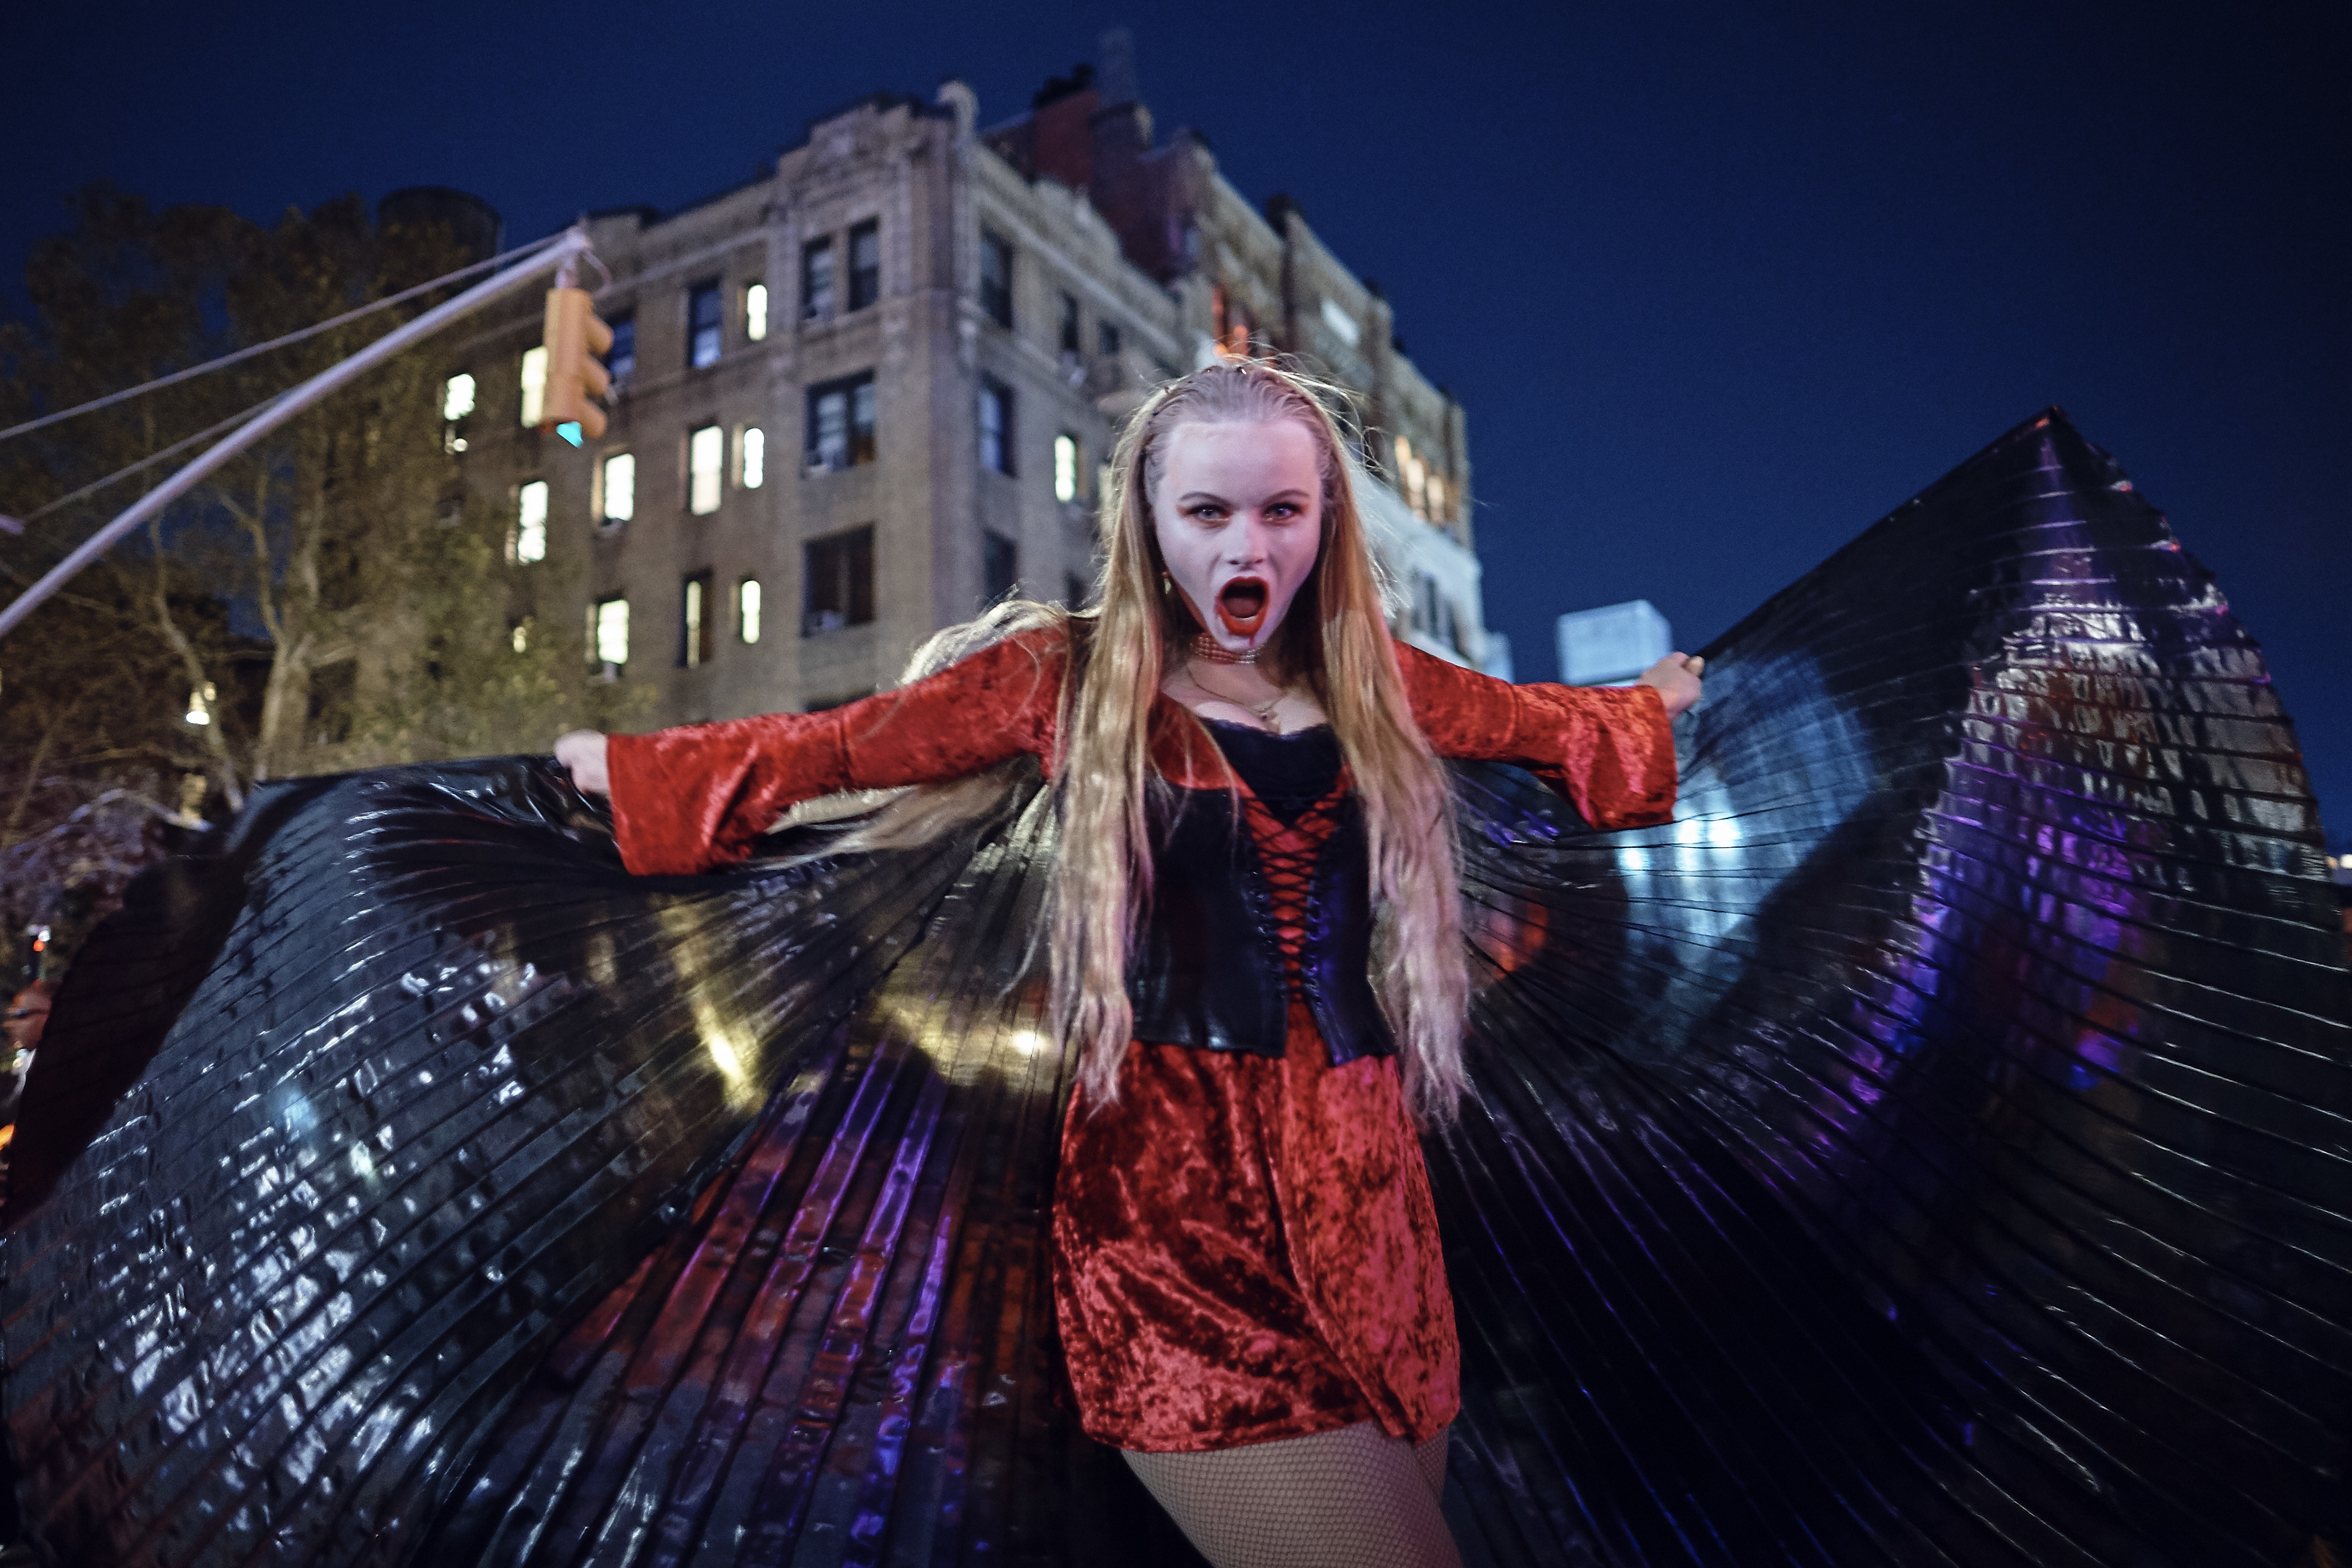 """<div class=""""meta image-caption""""><div class=""""origin-logo origin-image none""""><span>none</span></div><span class=""""caption-text"""">A reveler performs during the Greenwich Village Halloween Parade, Tuesday, Oct. 31, 2017, in New York. (AP Photo/Andres Kudacki)</span></div>"""